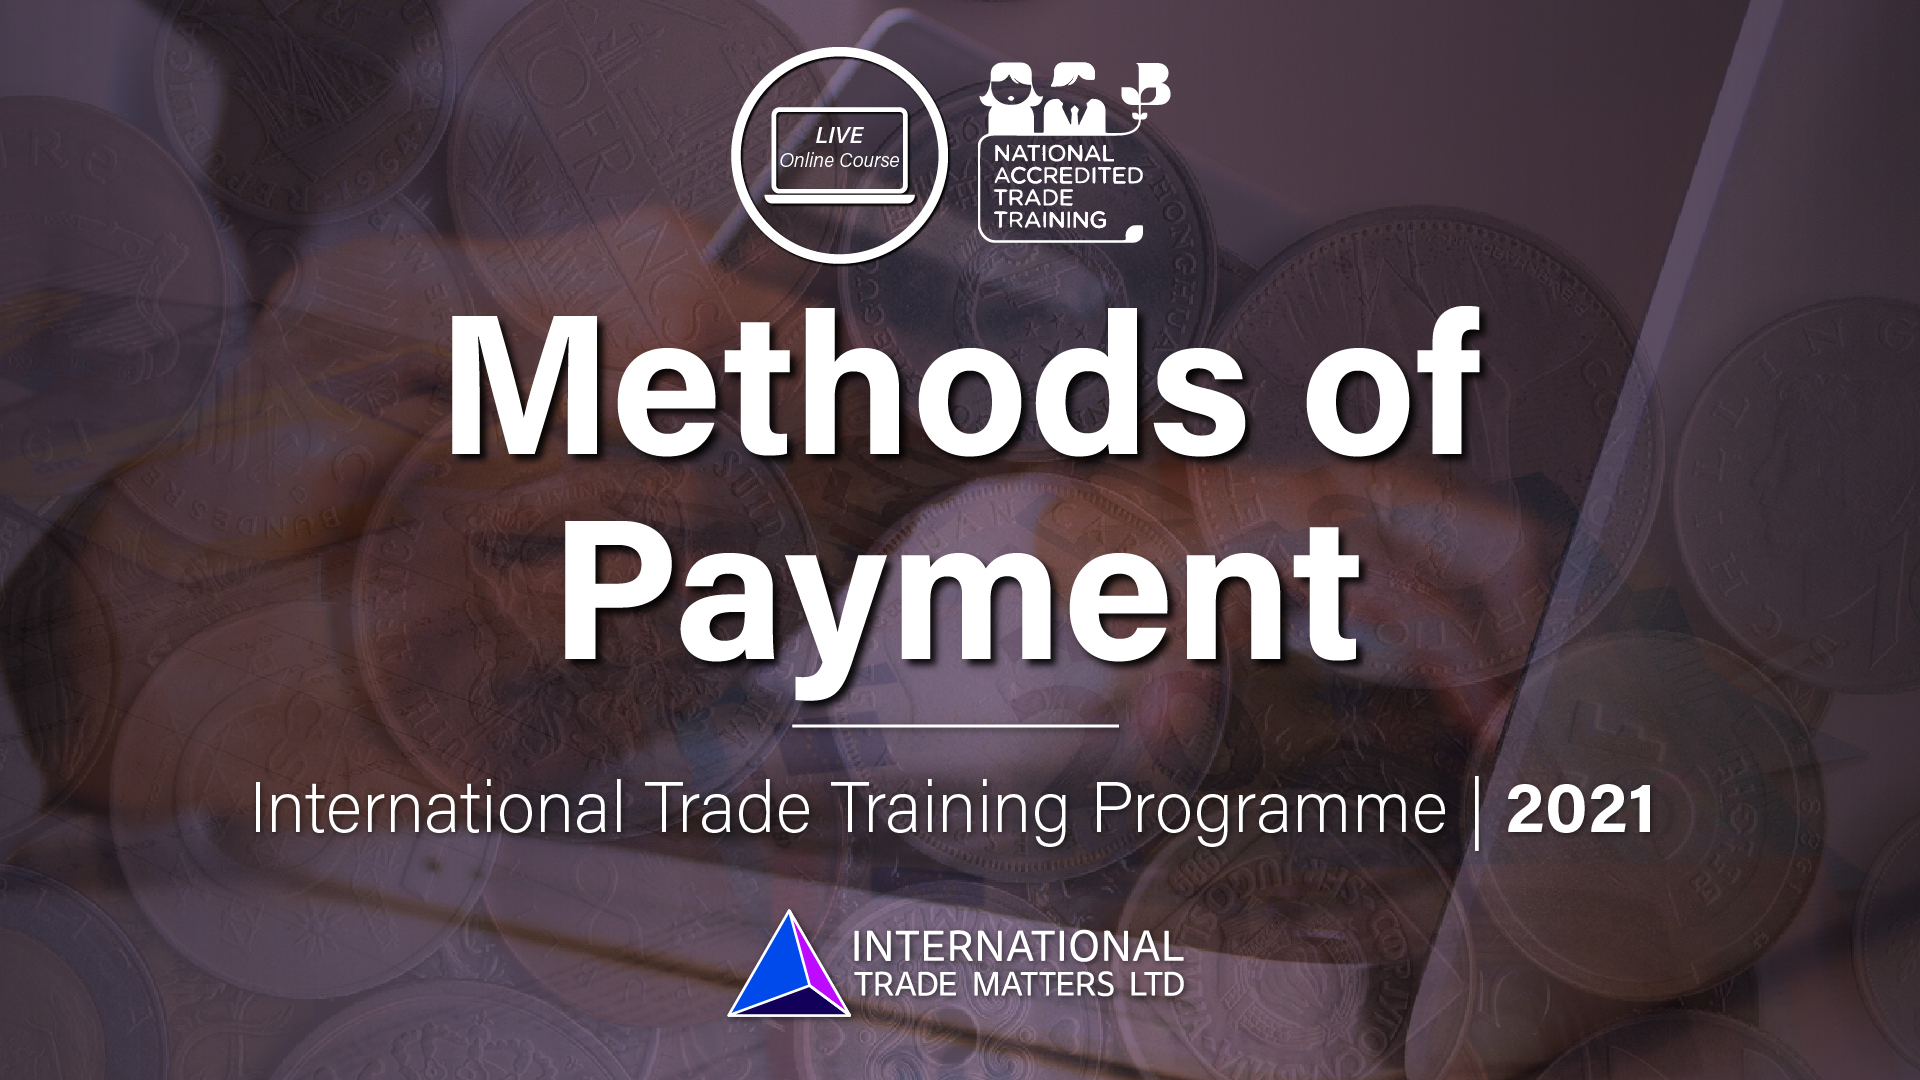 Methods of Payment – An Online Course